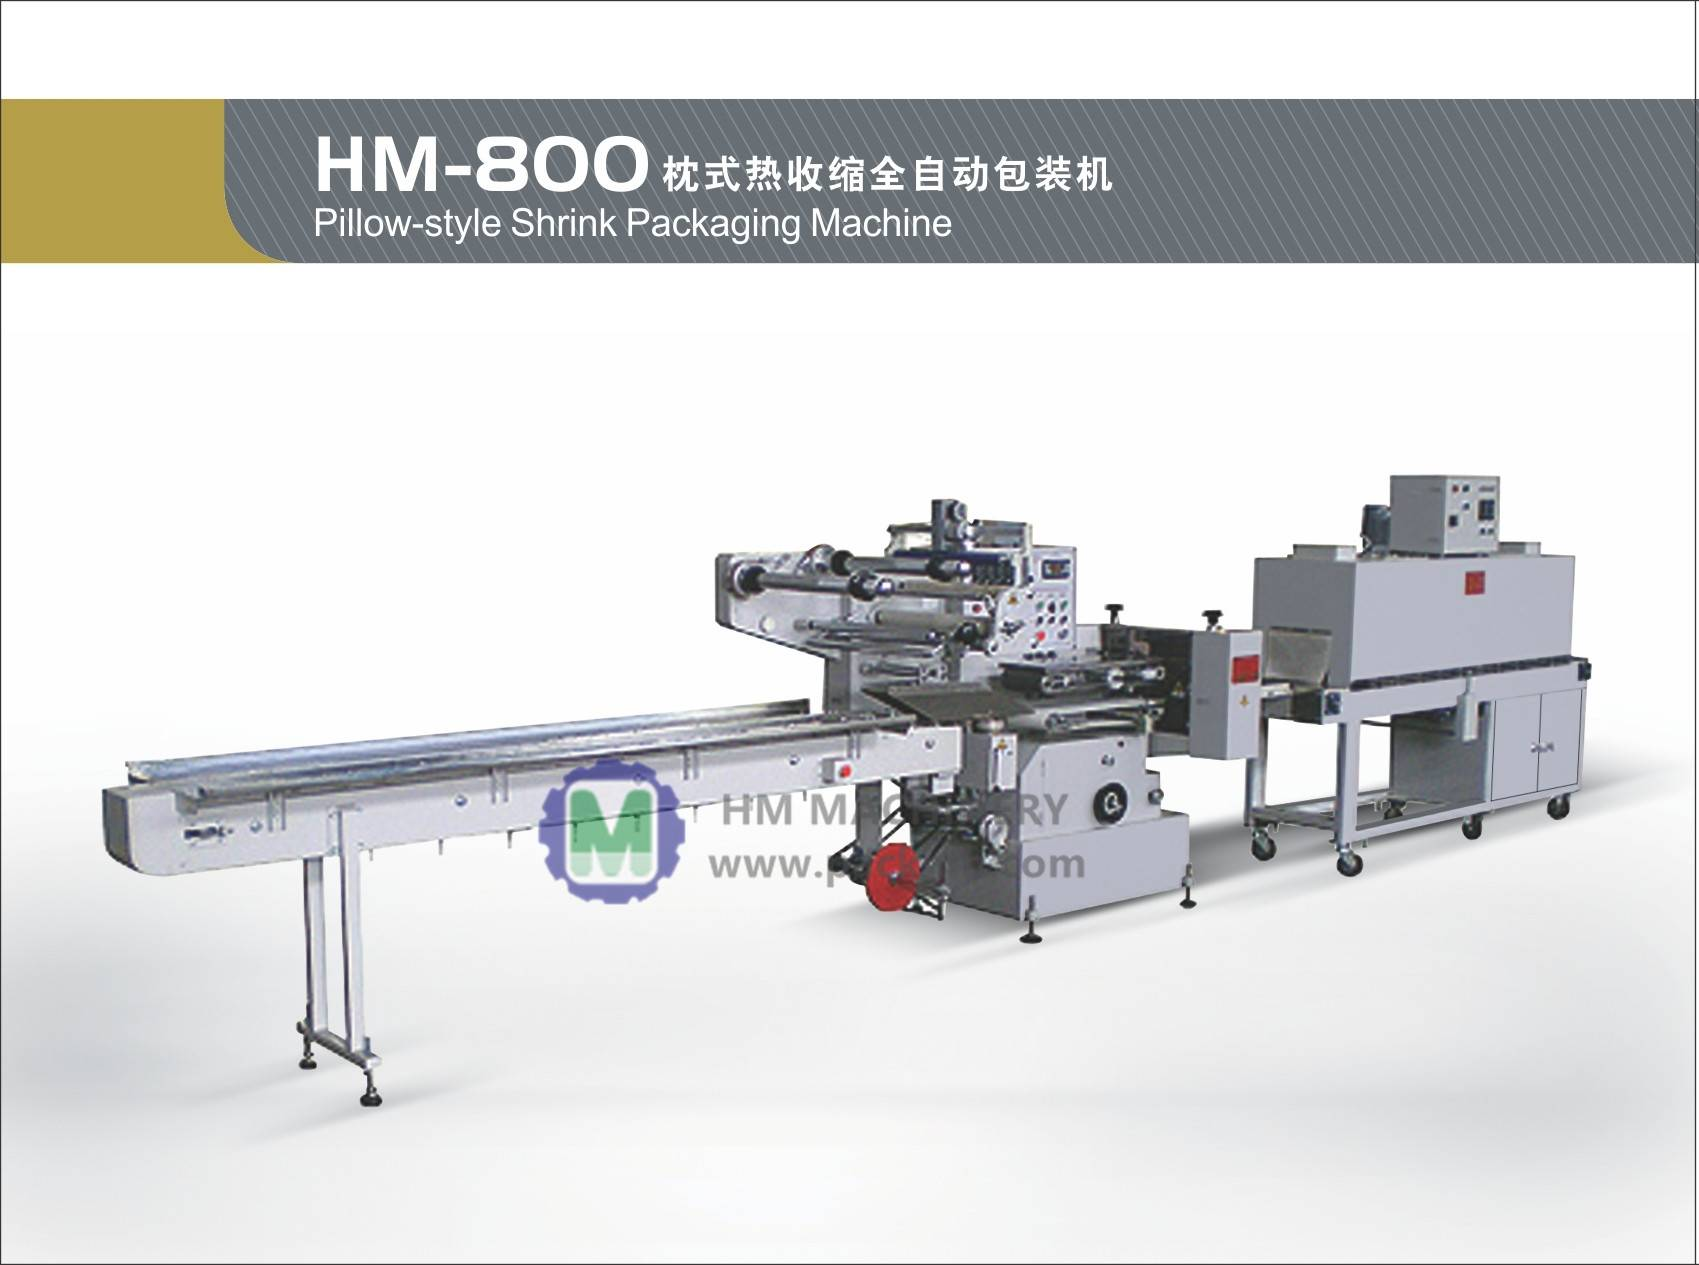 HM-800 Pillow-style Shrink Packaging Machine